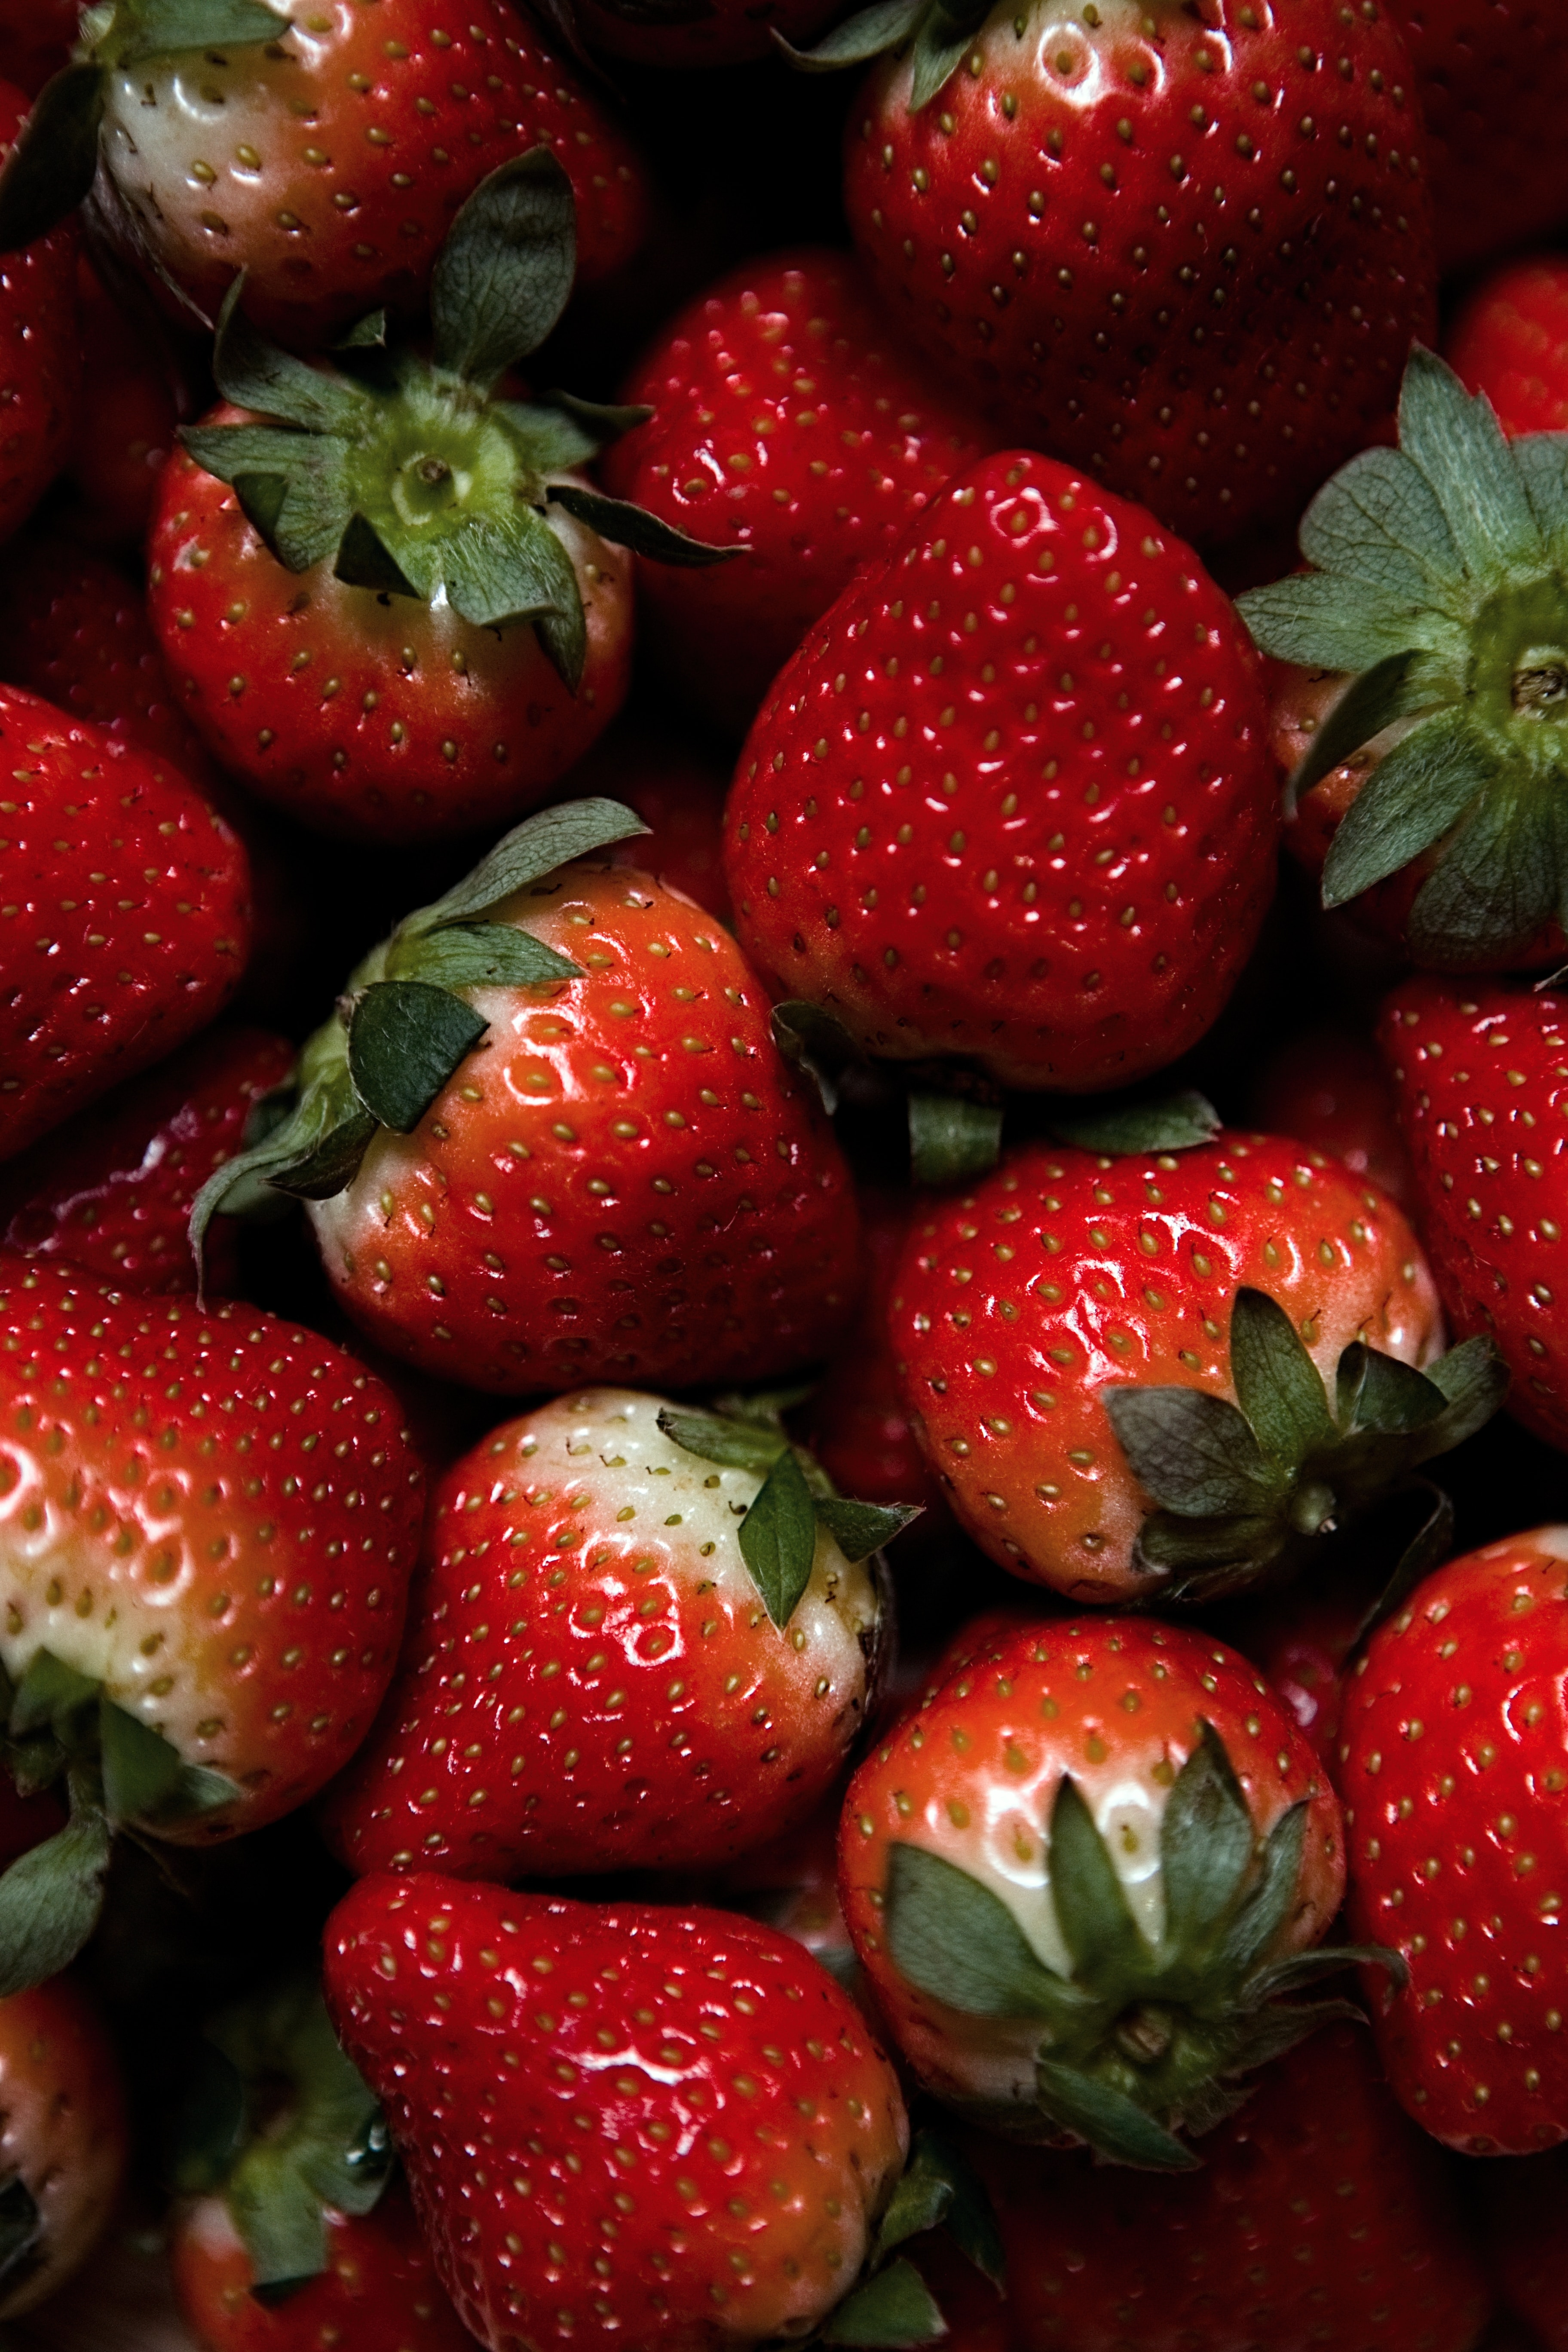 114792 download wallpaper Food, Strawberry, Ripe, Mature, Berries screensavers and pictures for free